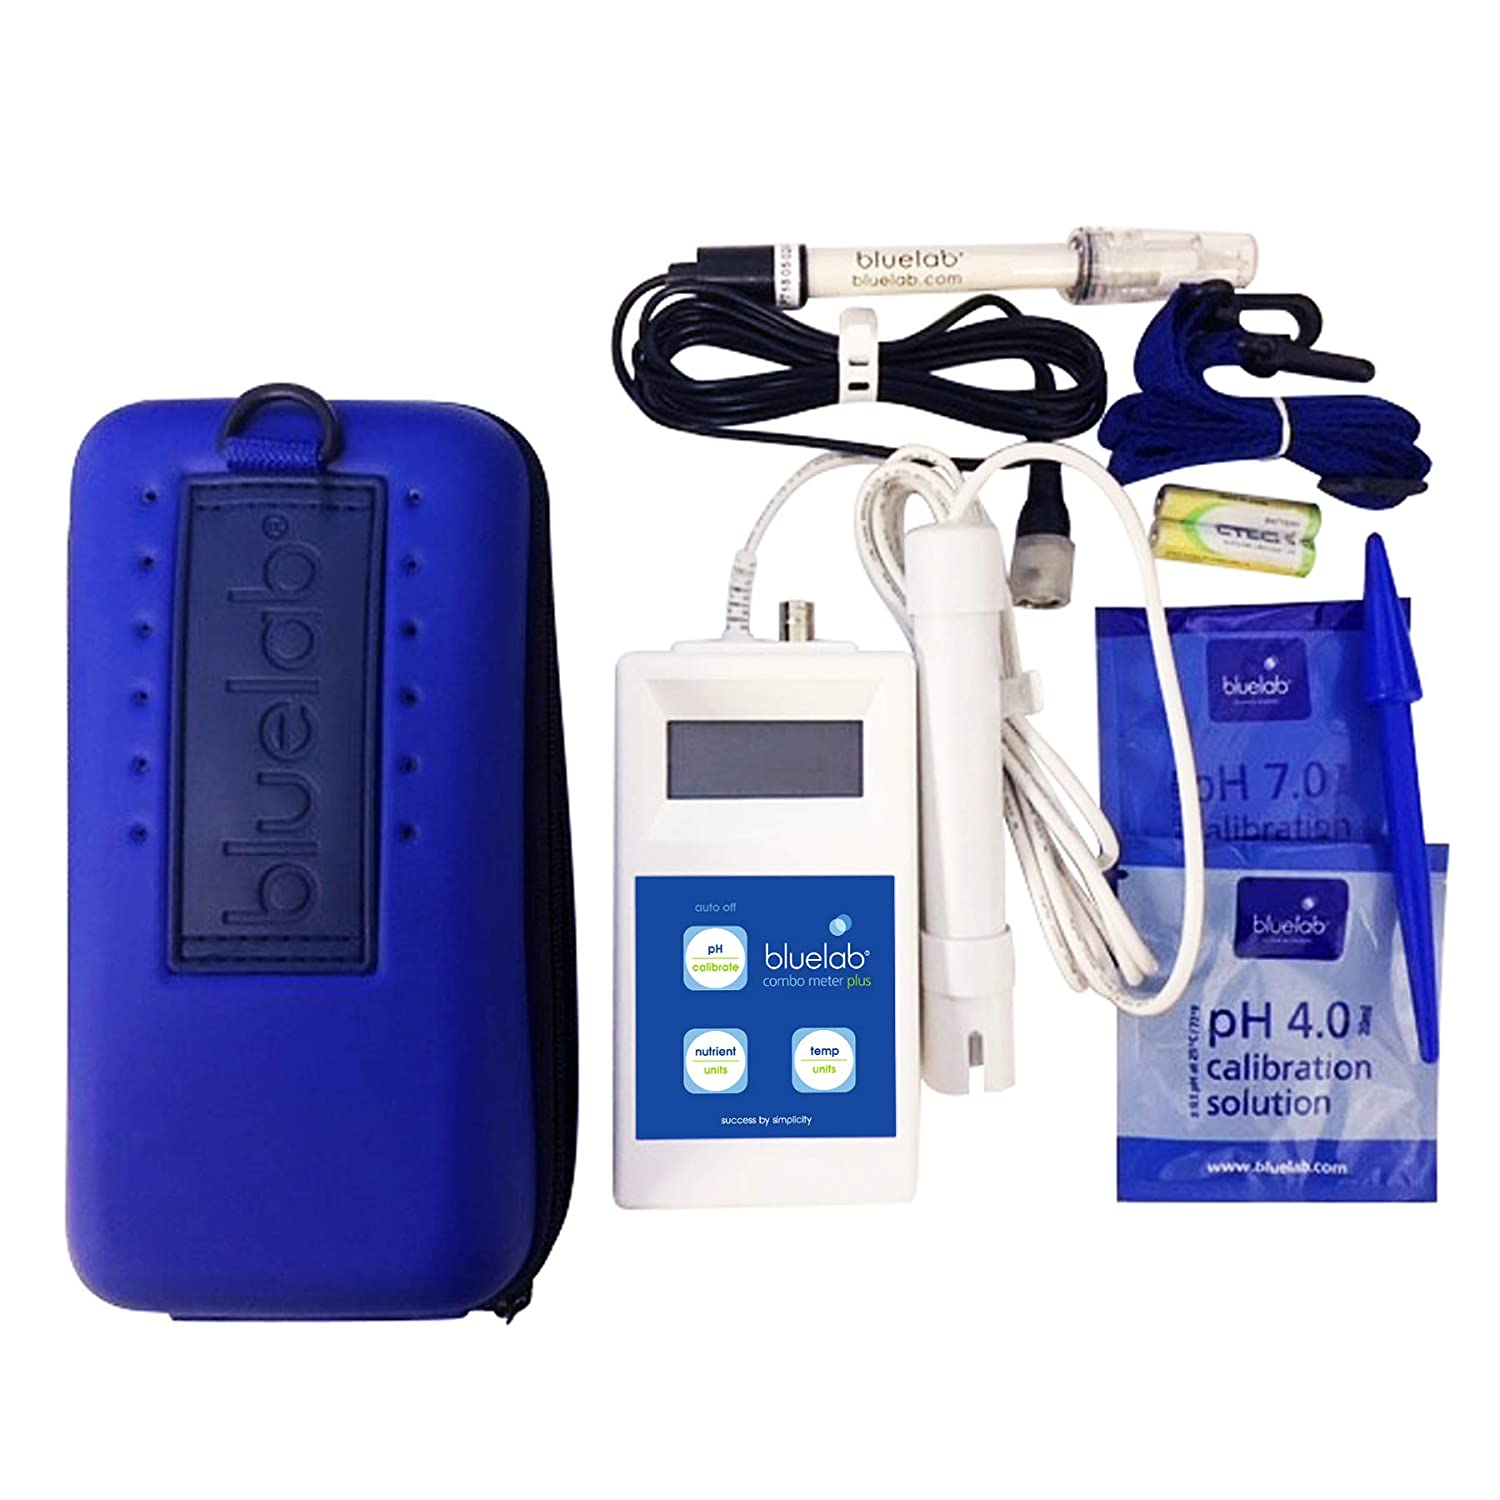 Bluelab Combo Meter Plus Conductivity /& Temperature in Soil /& Plants Accurate pH Measurements Handheld Digital Hydroponic Nutrient and pH Meter for Measuring pH Levels Bonus Carry Case Included